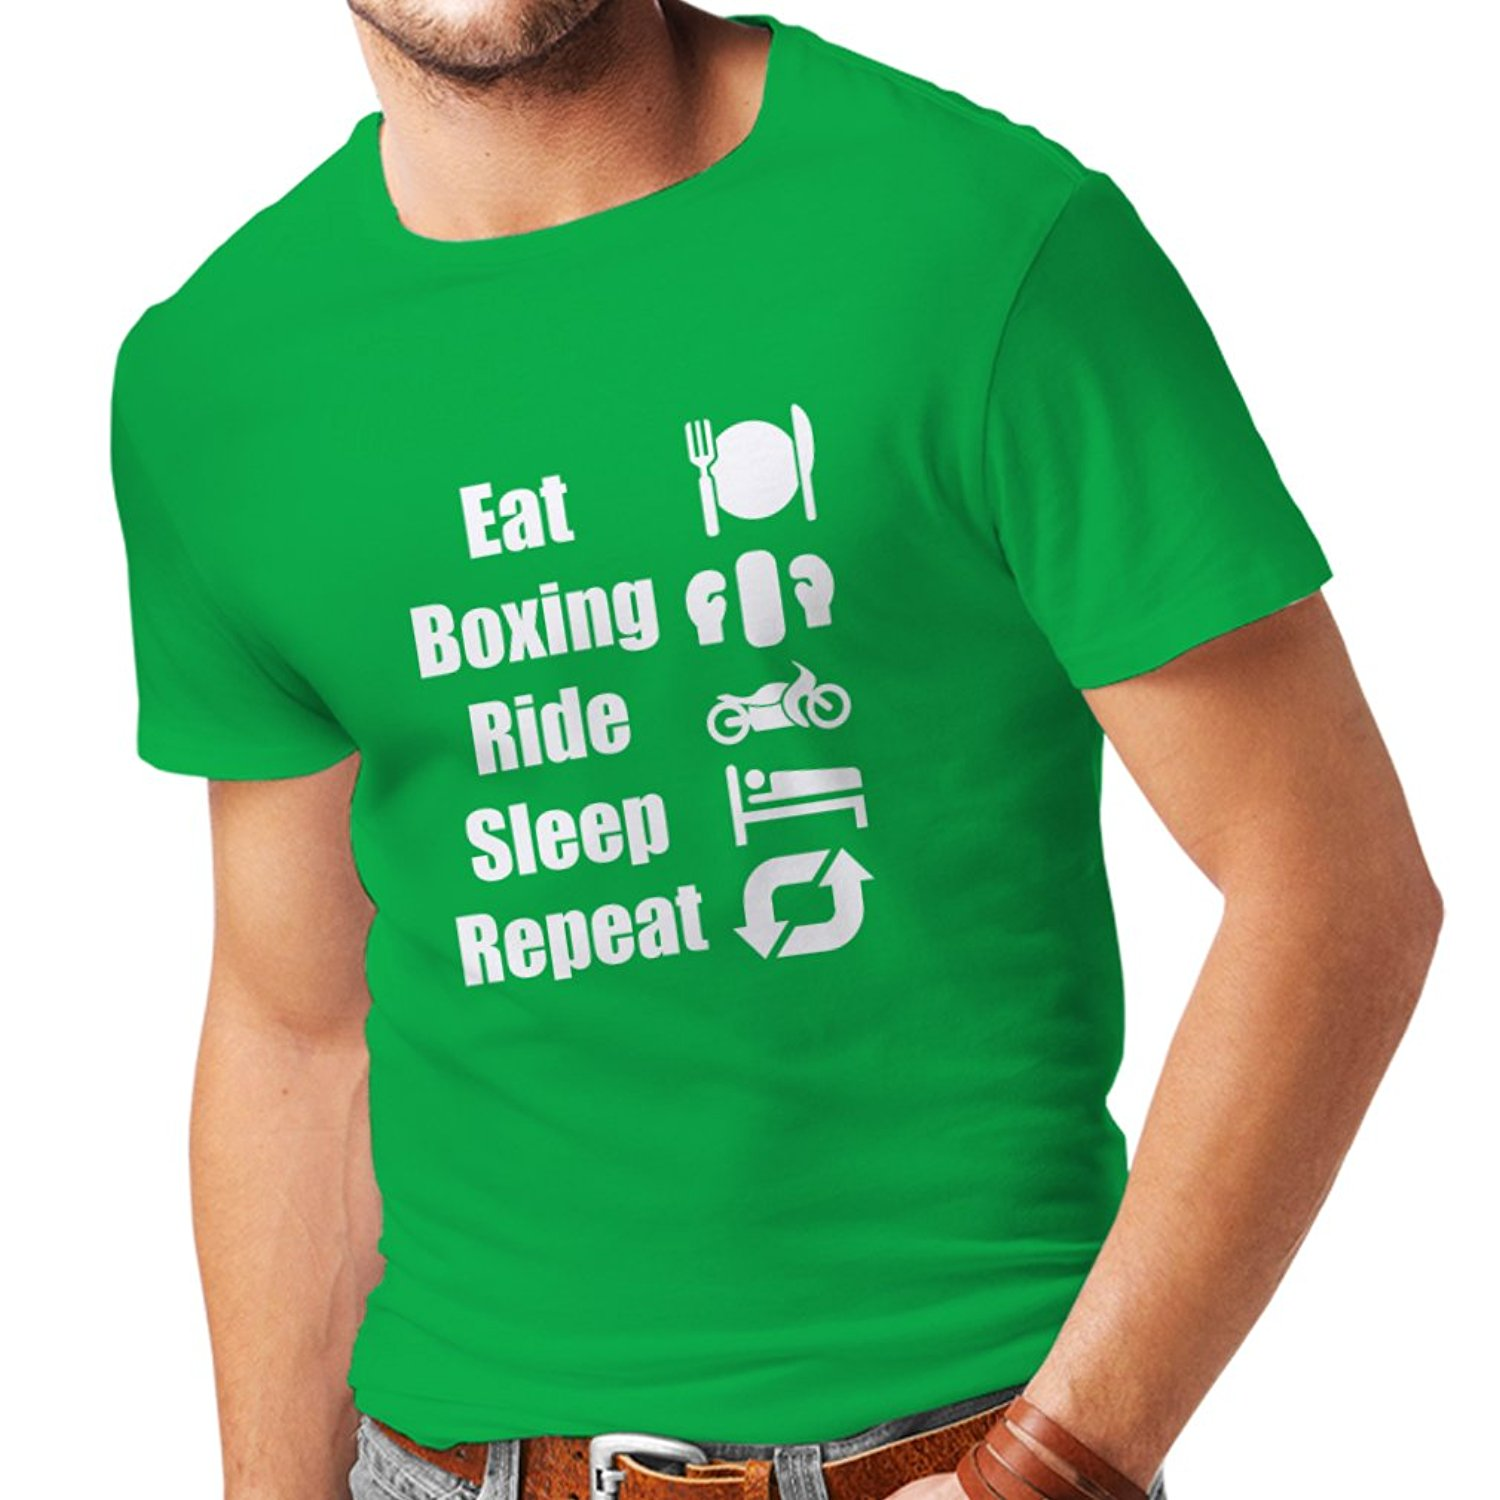 Gildan T shirts for men Eat Boxinger Ride Sleep Repeat - for fighters and riders